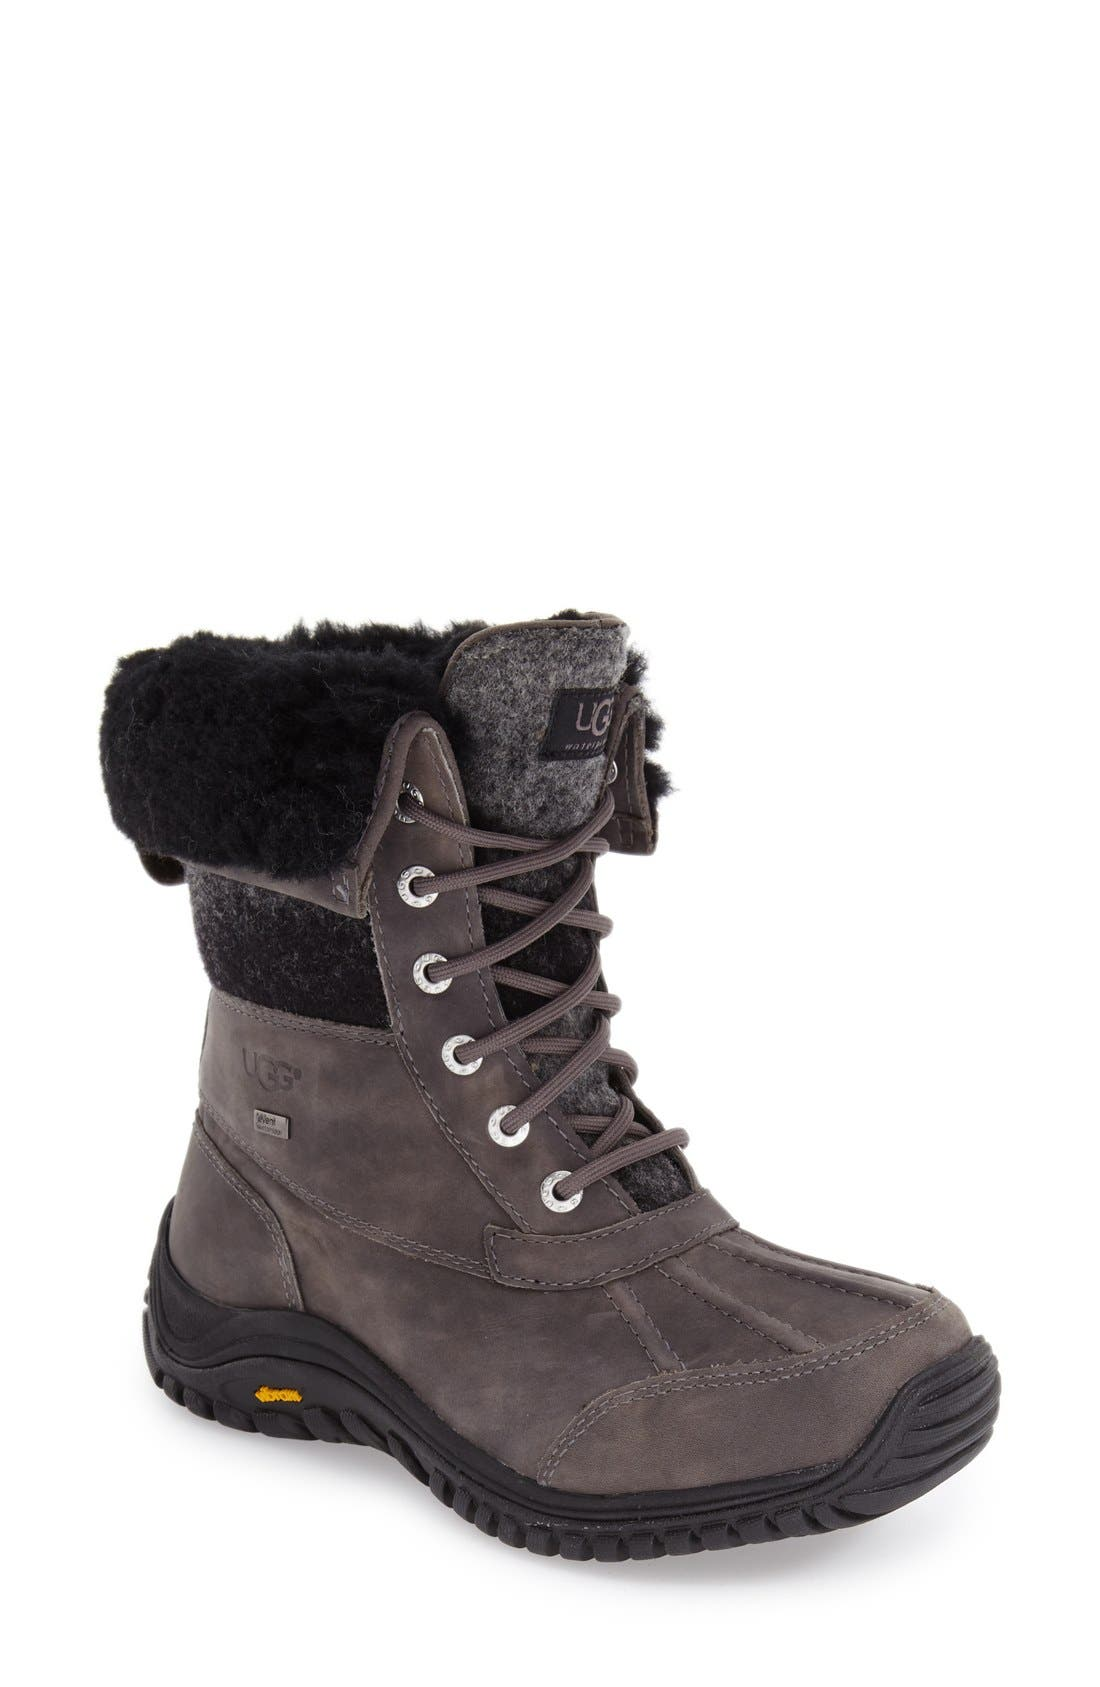 Main Image - UGG® Adirondack Waterproof Insulated Winter Boot (Women)